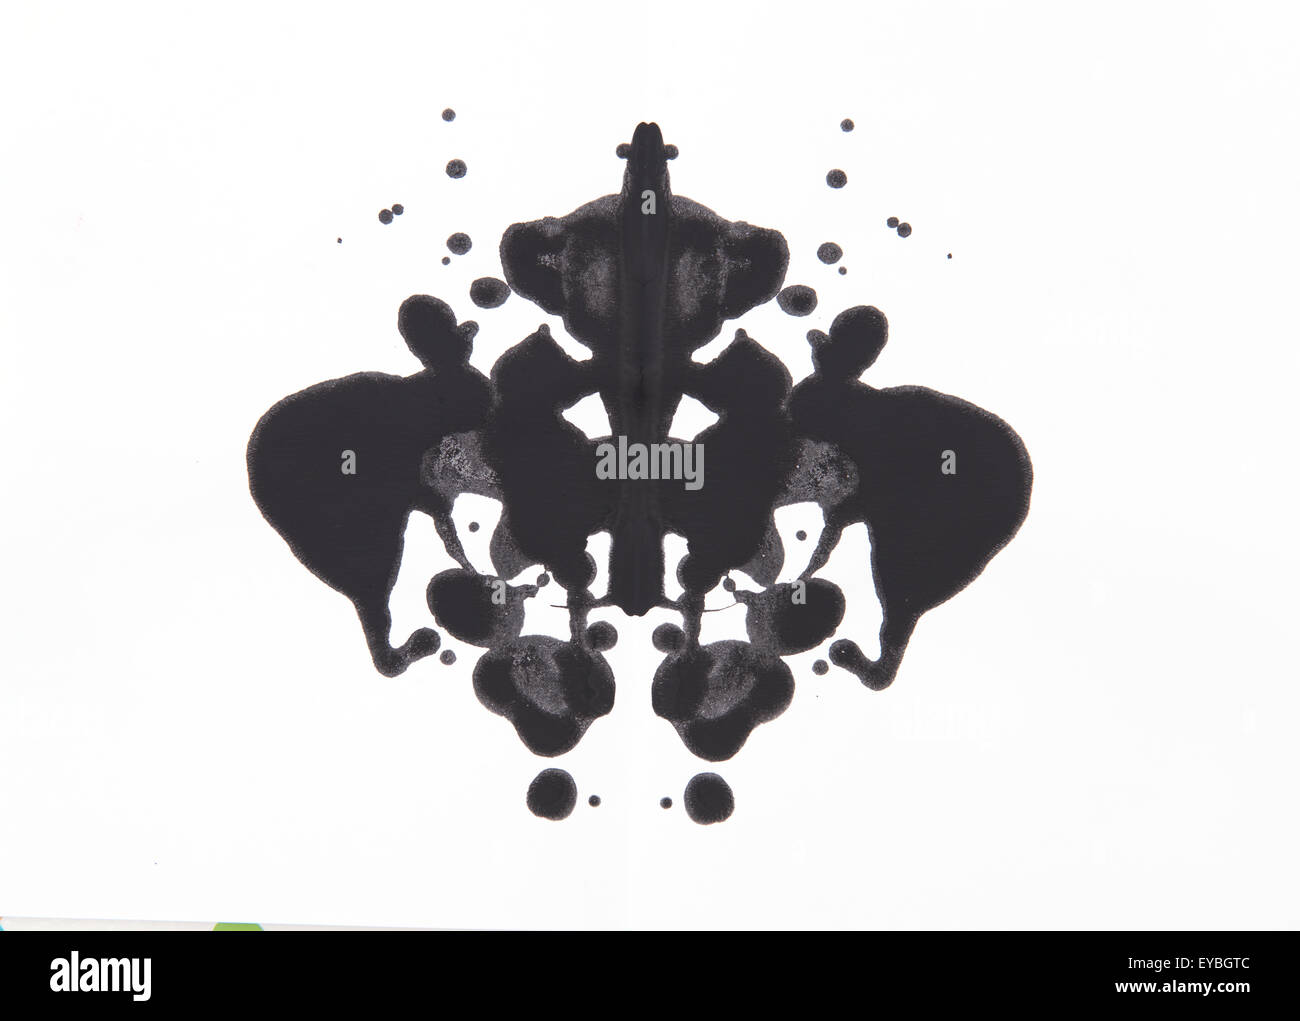 Abstract symmetric painting, Rorschach test - Stock Image